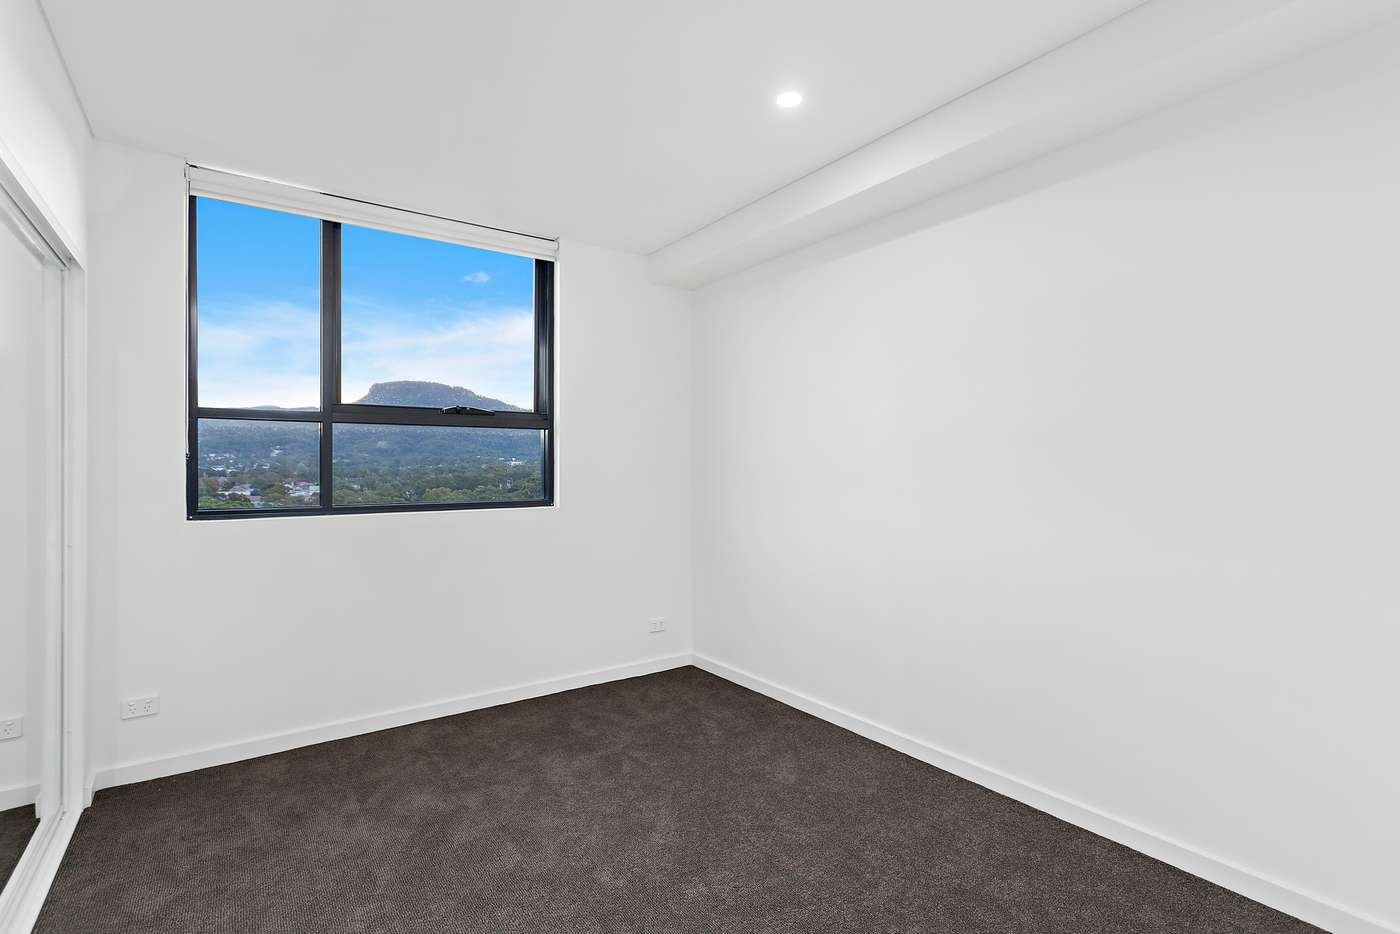 Fifth view of Homely unit listing, 18/3-5 Wiseman Avenue, Wollongong NSW 2500